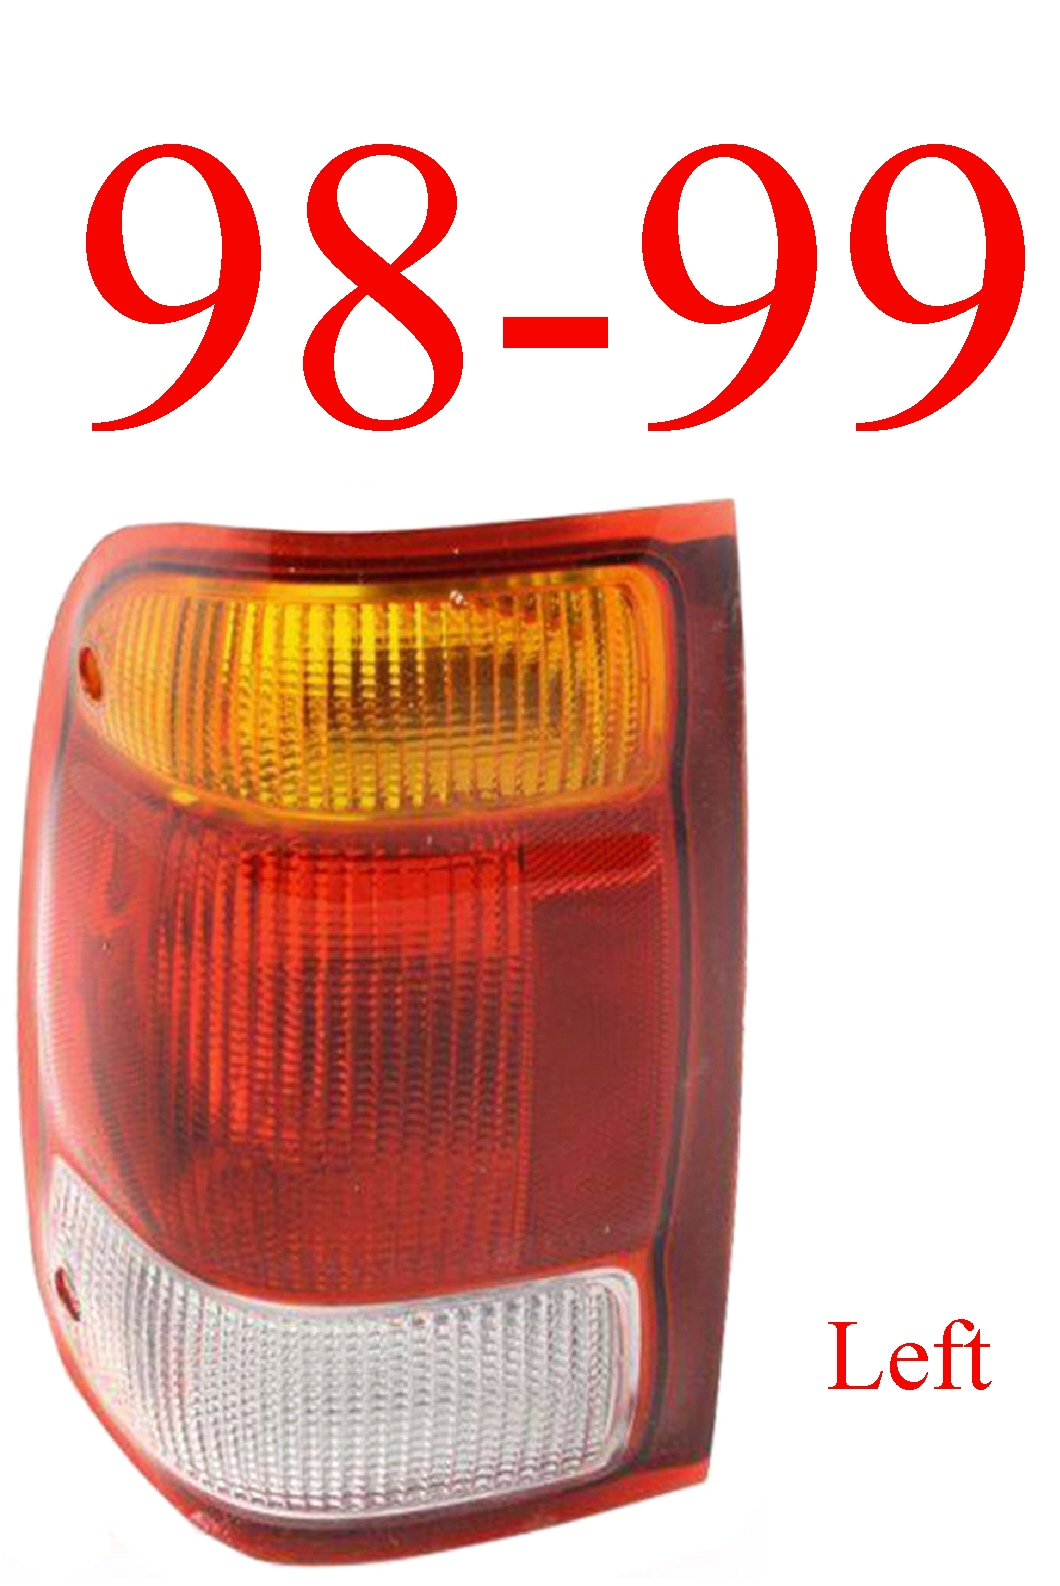 98-99 Ford Ranger Left Tail Light Assembly